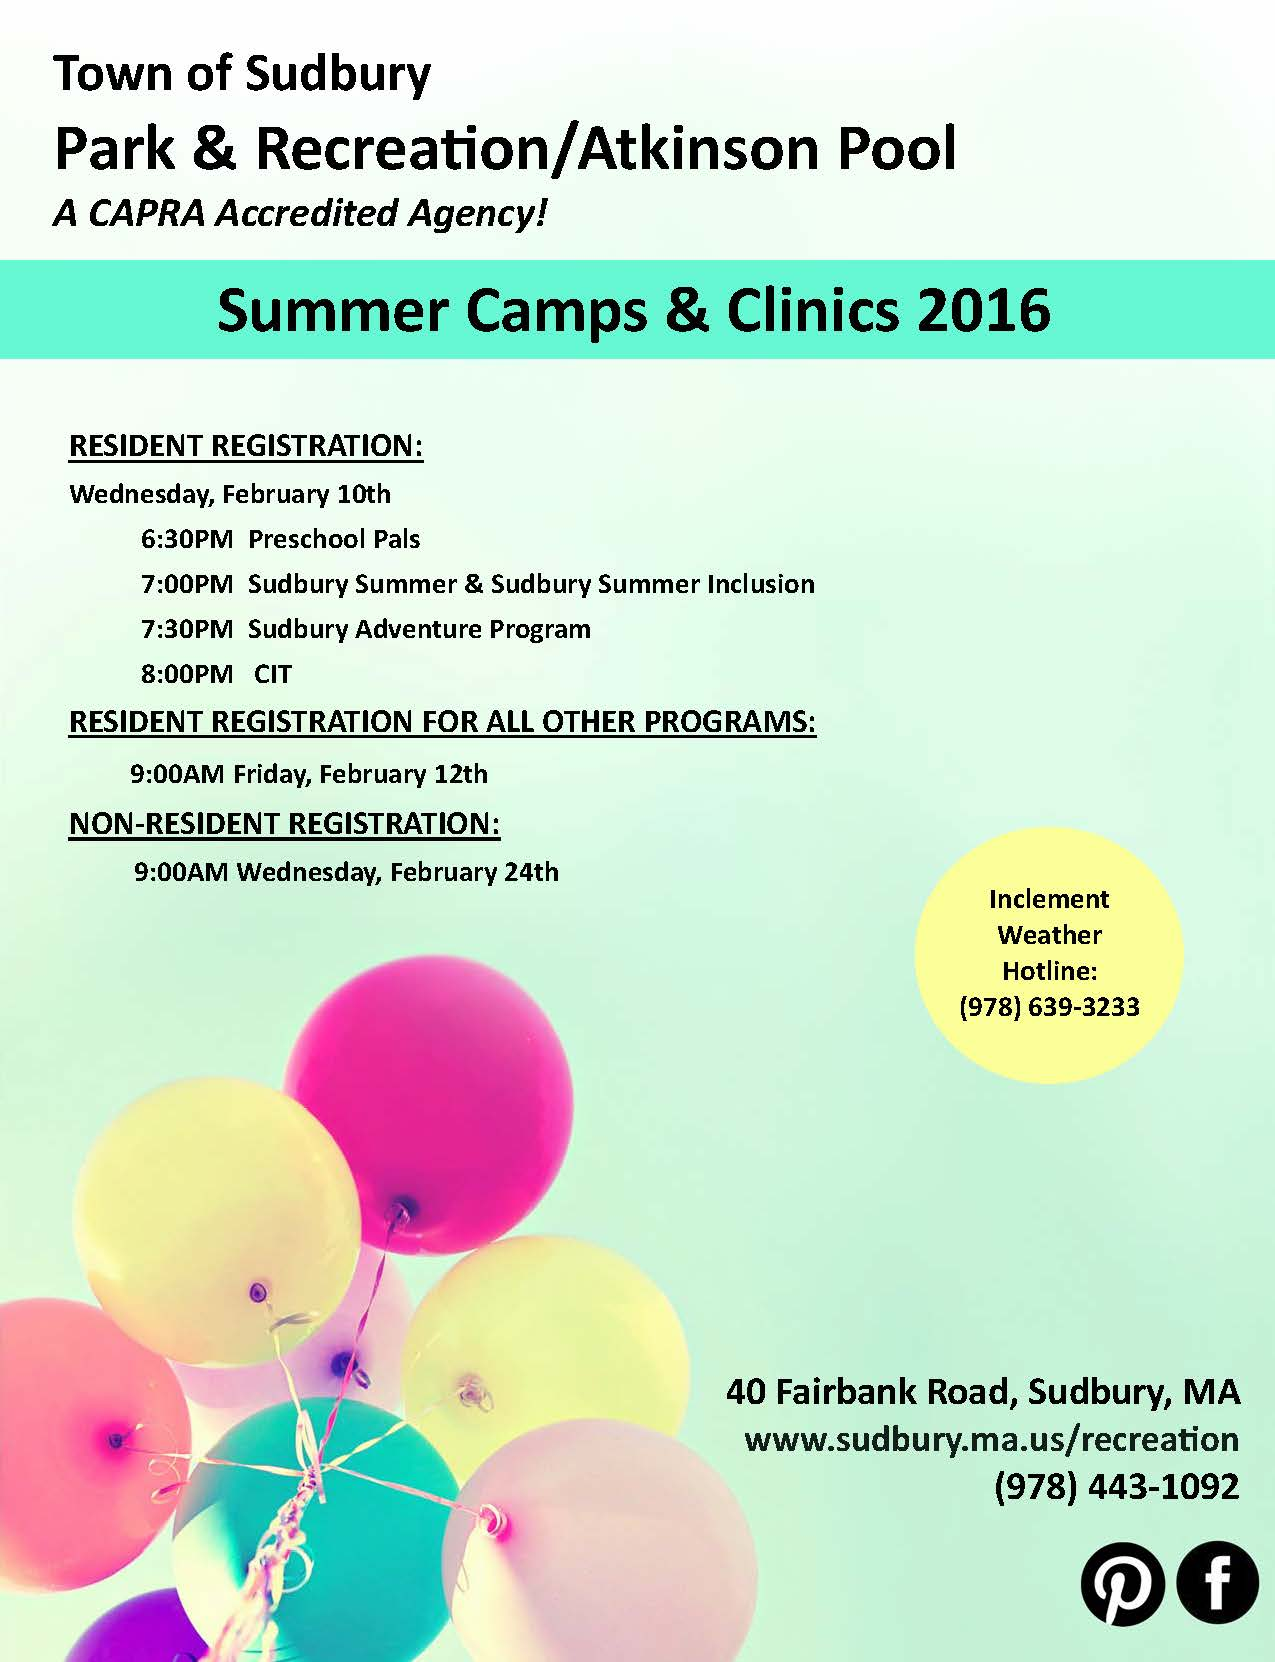 cover letter for summer camp summer camps and clinics brochure park recreation department summer camps and - Recreation Cover Letter